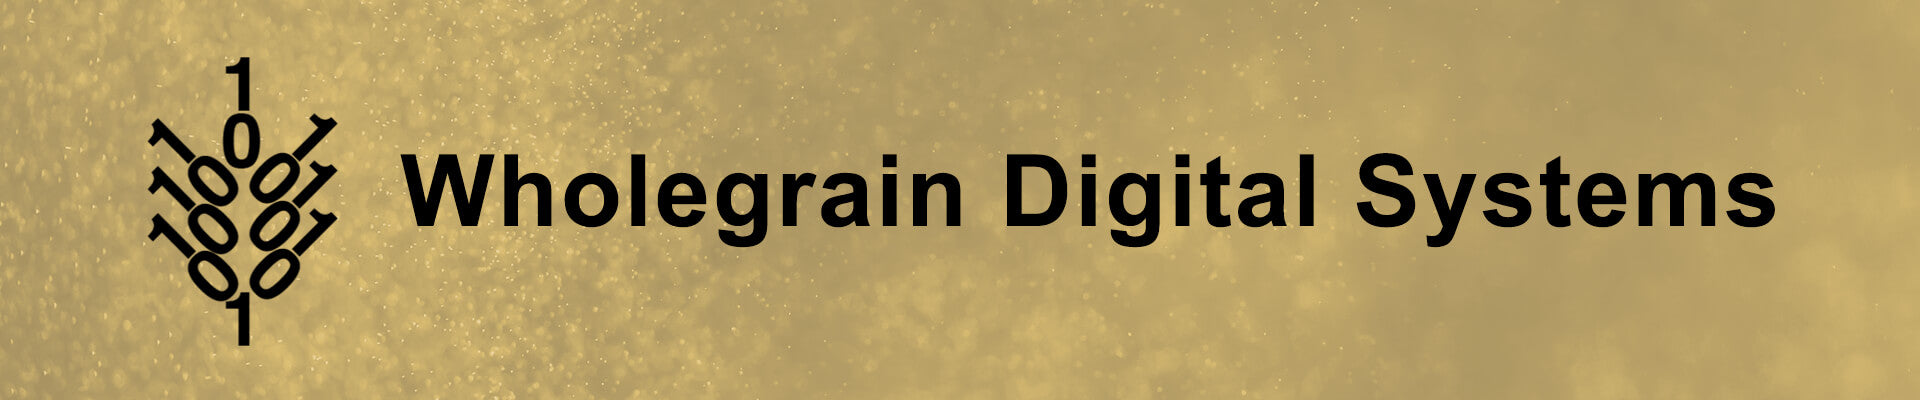 Wholegrain Digital Systems